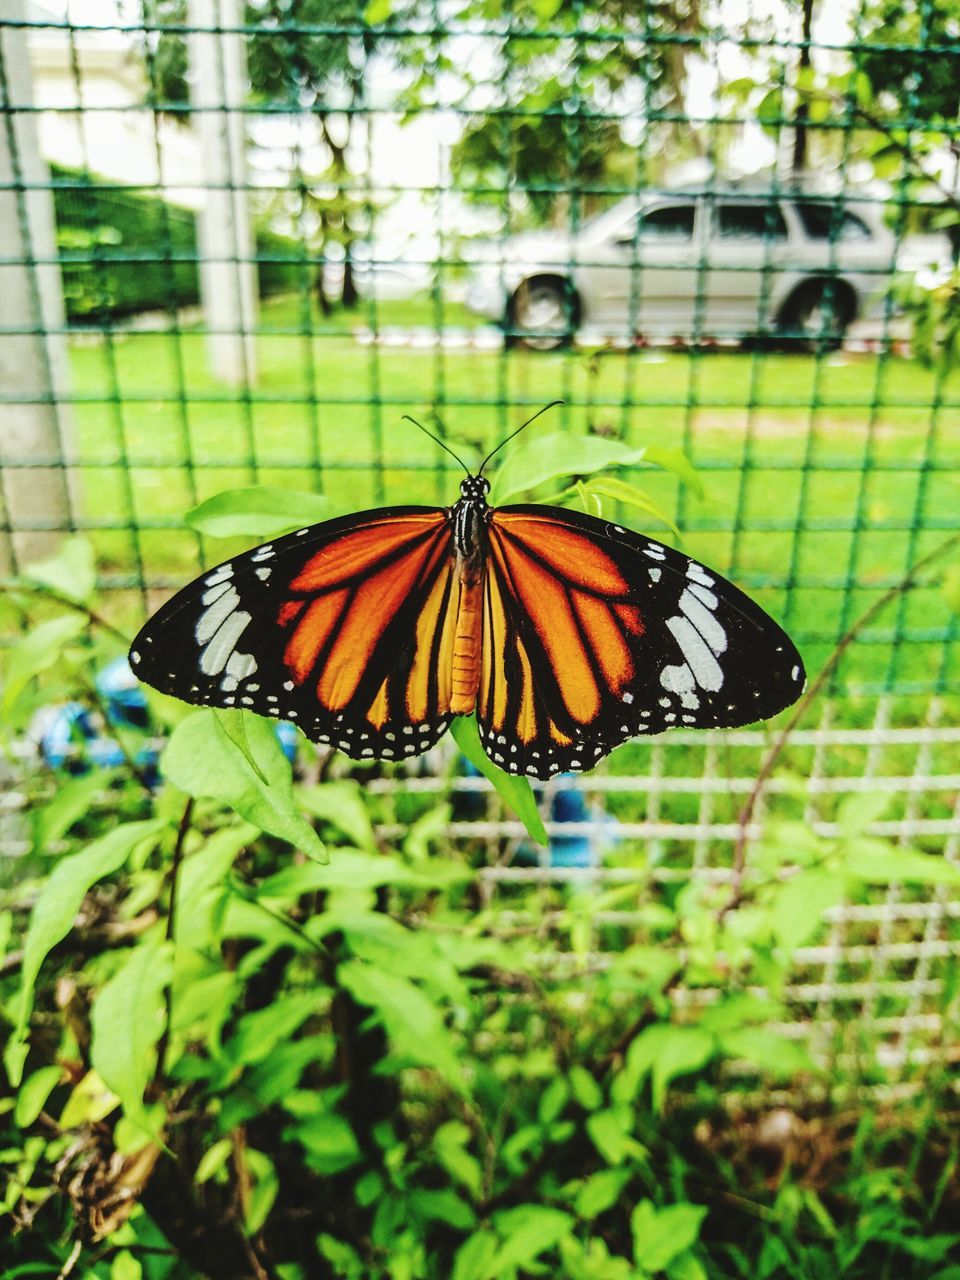 butterfly - insect, insect, animal themes, animals in the wild, one animal, butterfly, nature, animal wildlife, green color, day, outdoors, no people, growth, focus on foreground, animal markings, close-up, fragility, full length, beauty in nature, freshness, perching